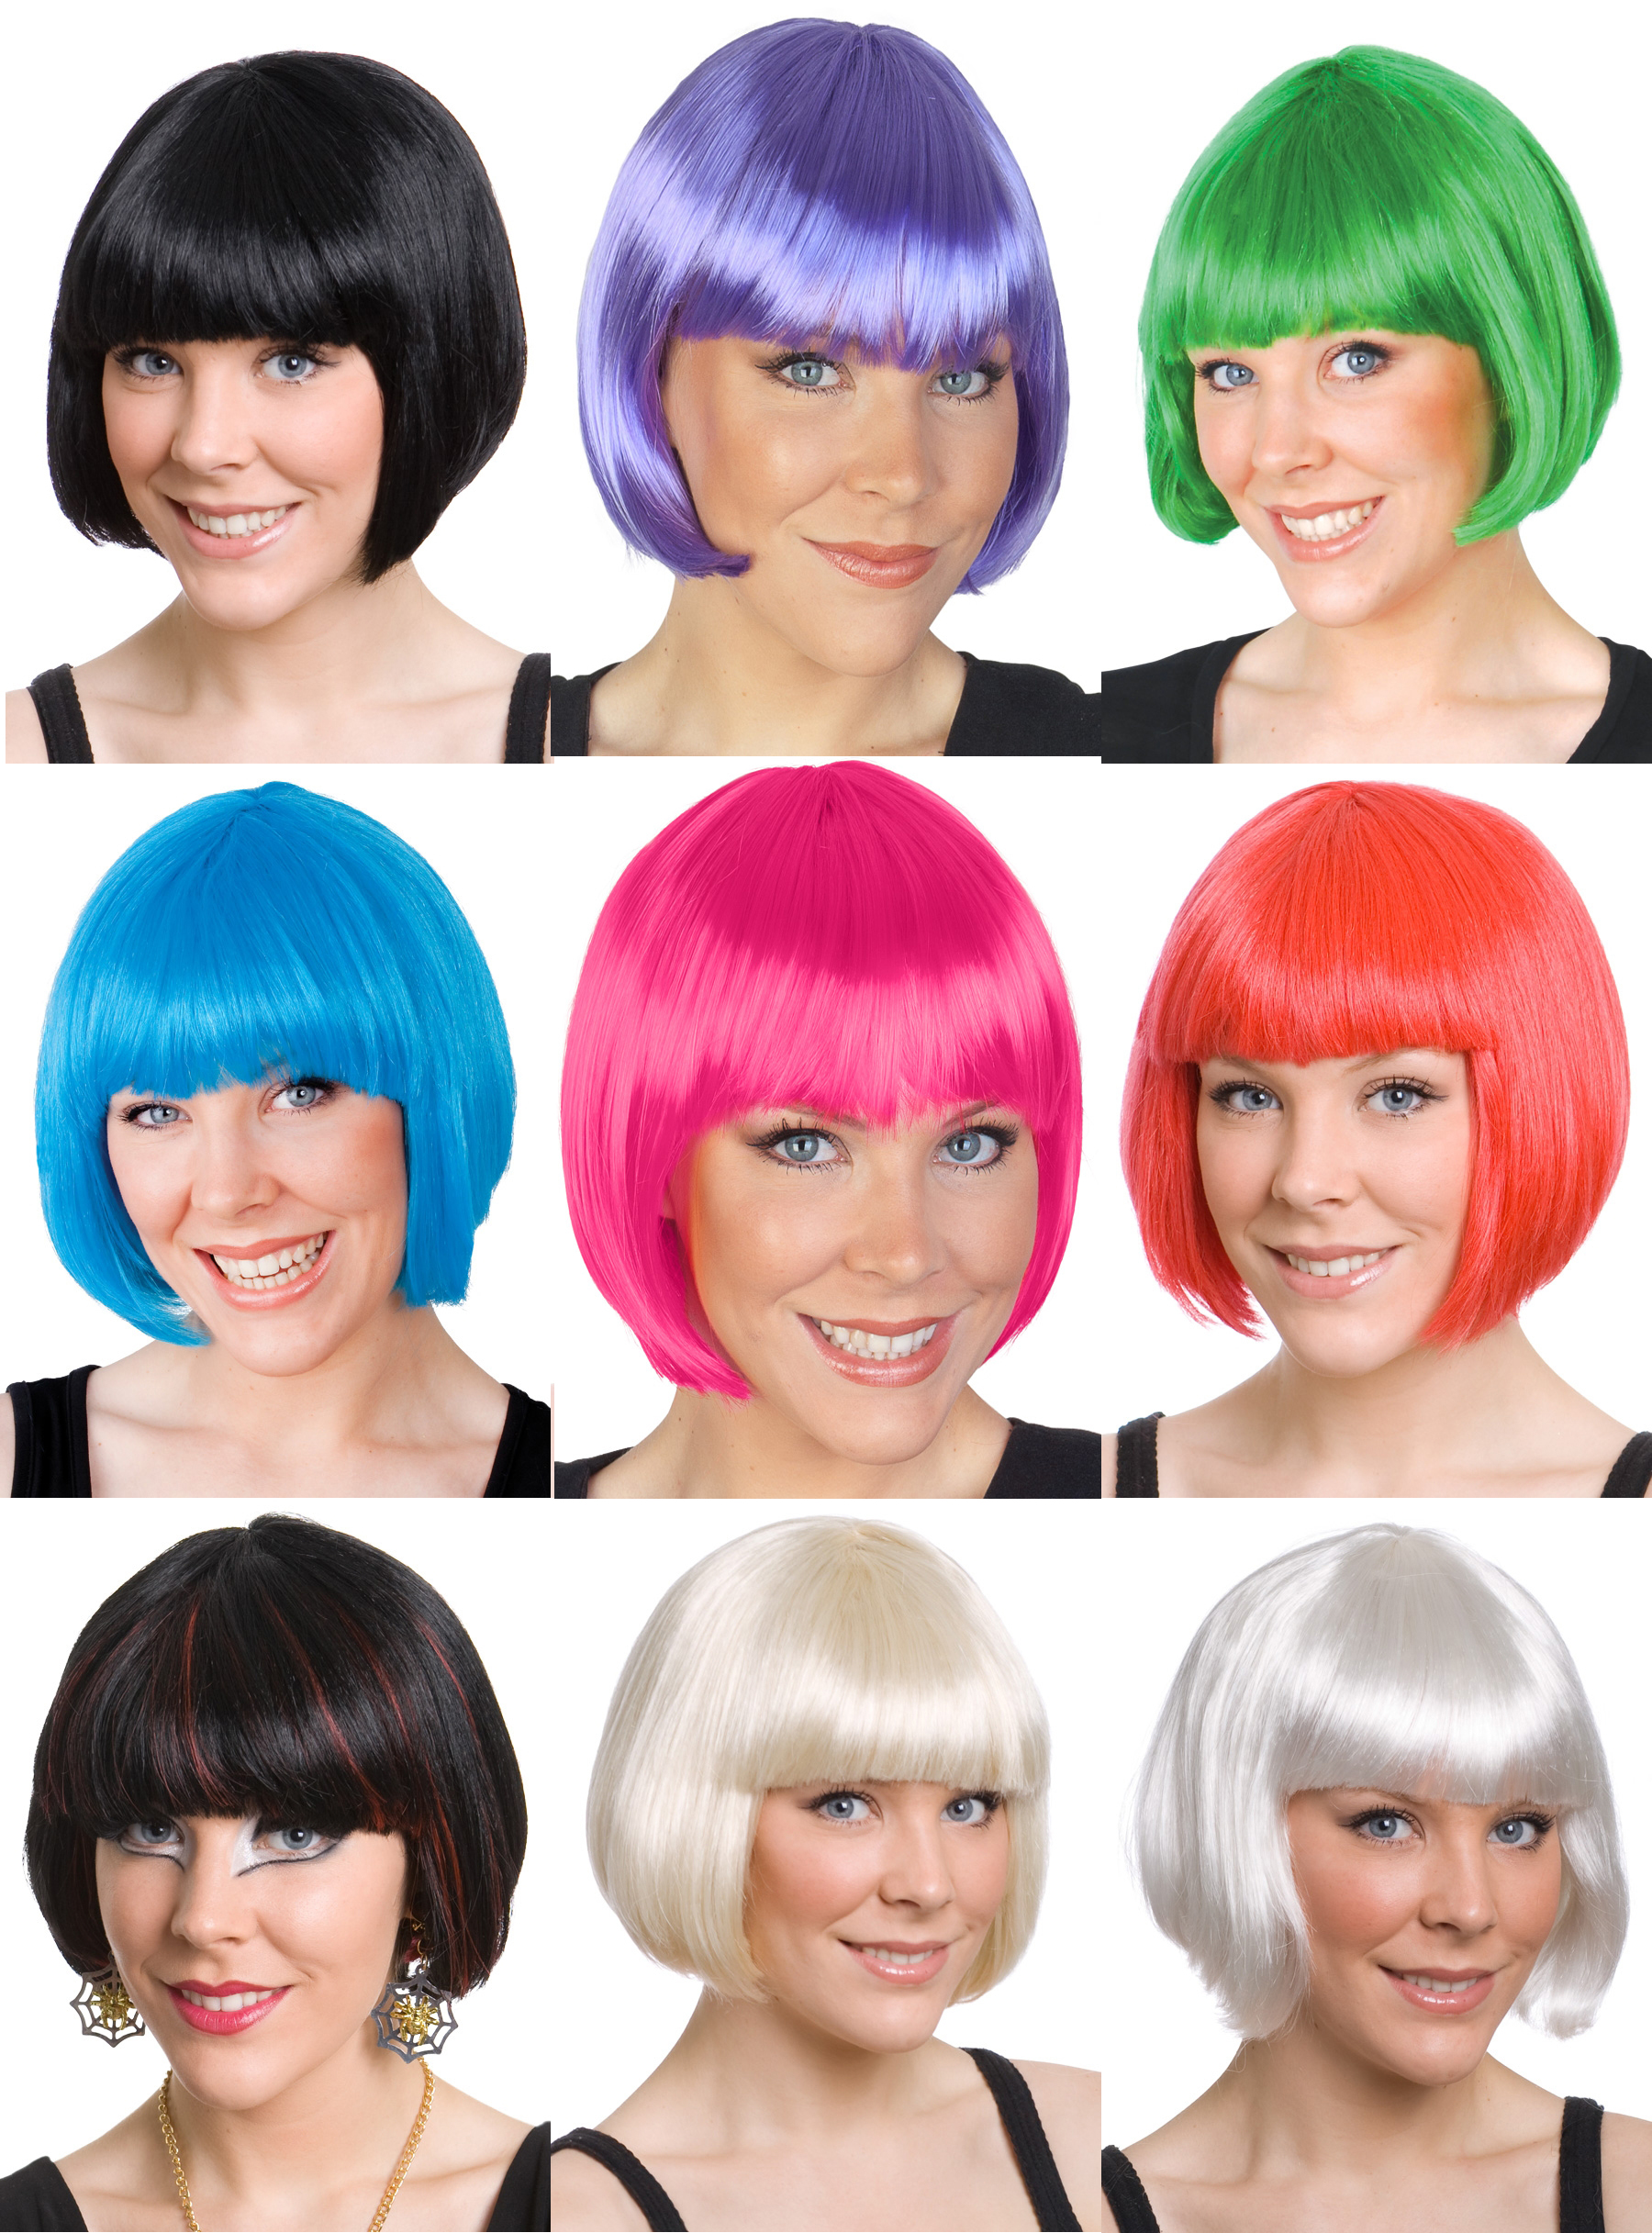 BOB WIG - PAIGE BOY STYLE WITH FRINGE